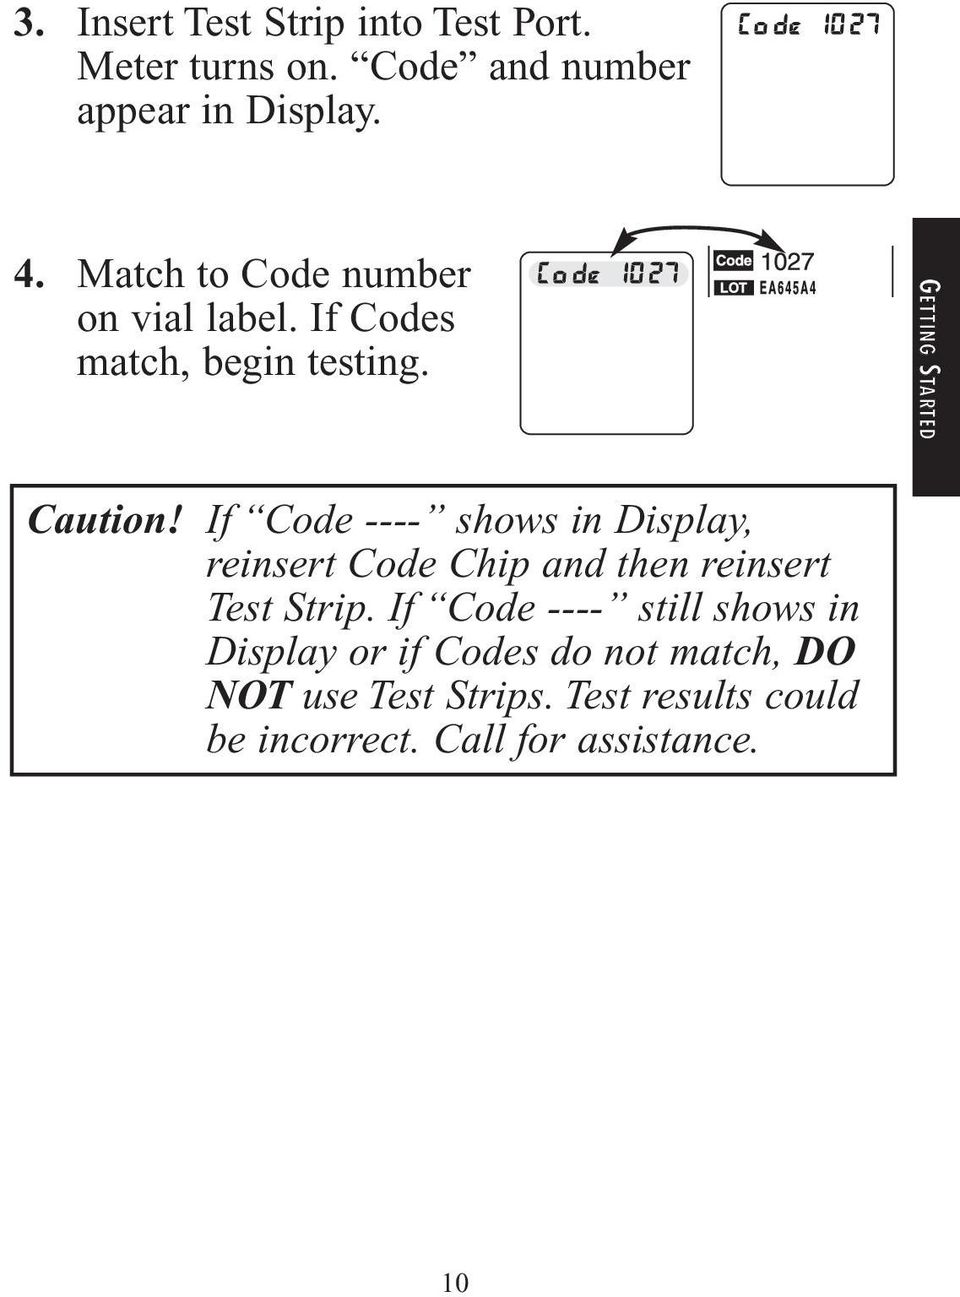 If Code ---- shows in Display, reinsert Code Chip and then reinsert Test Strip.